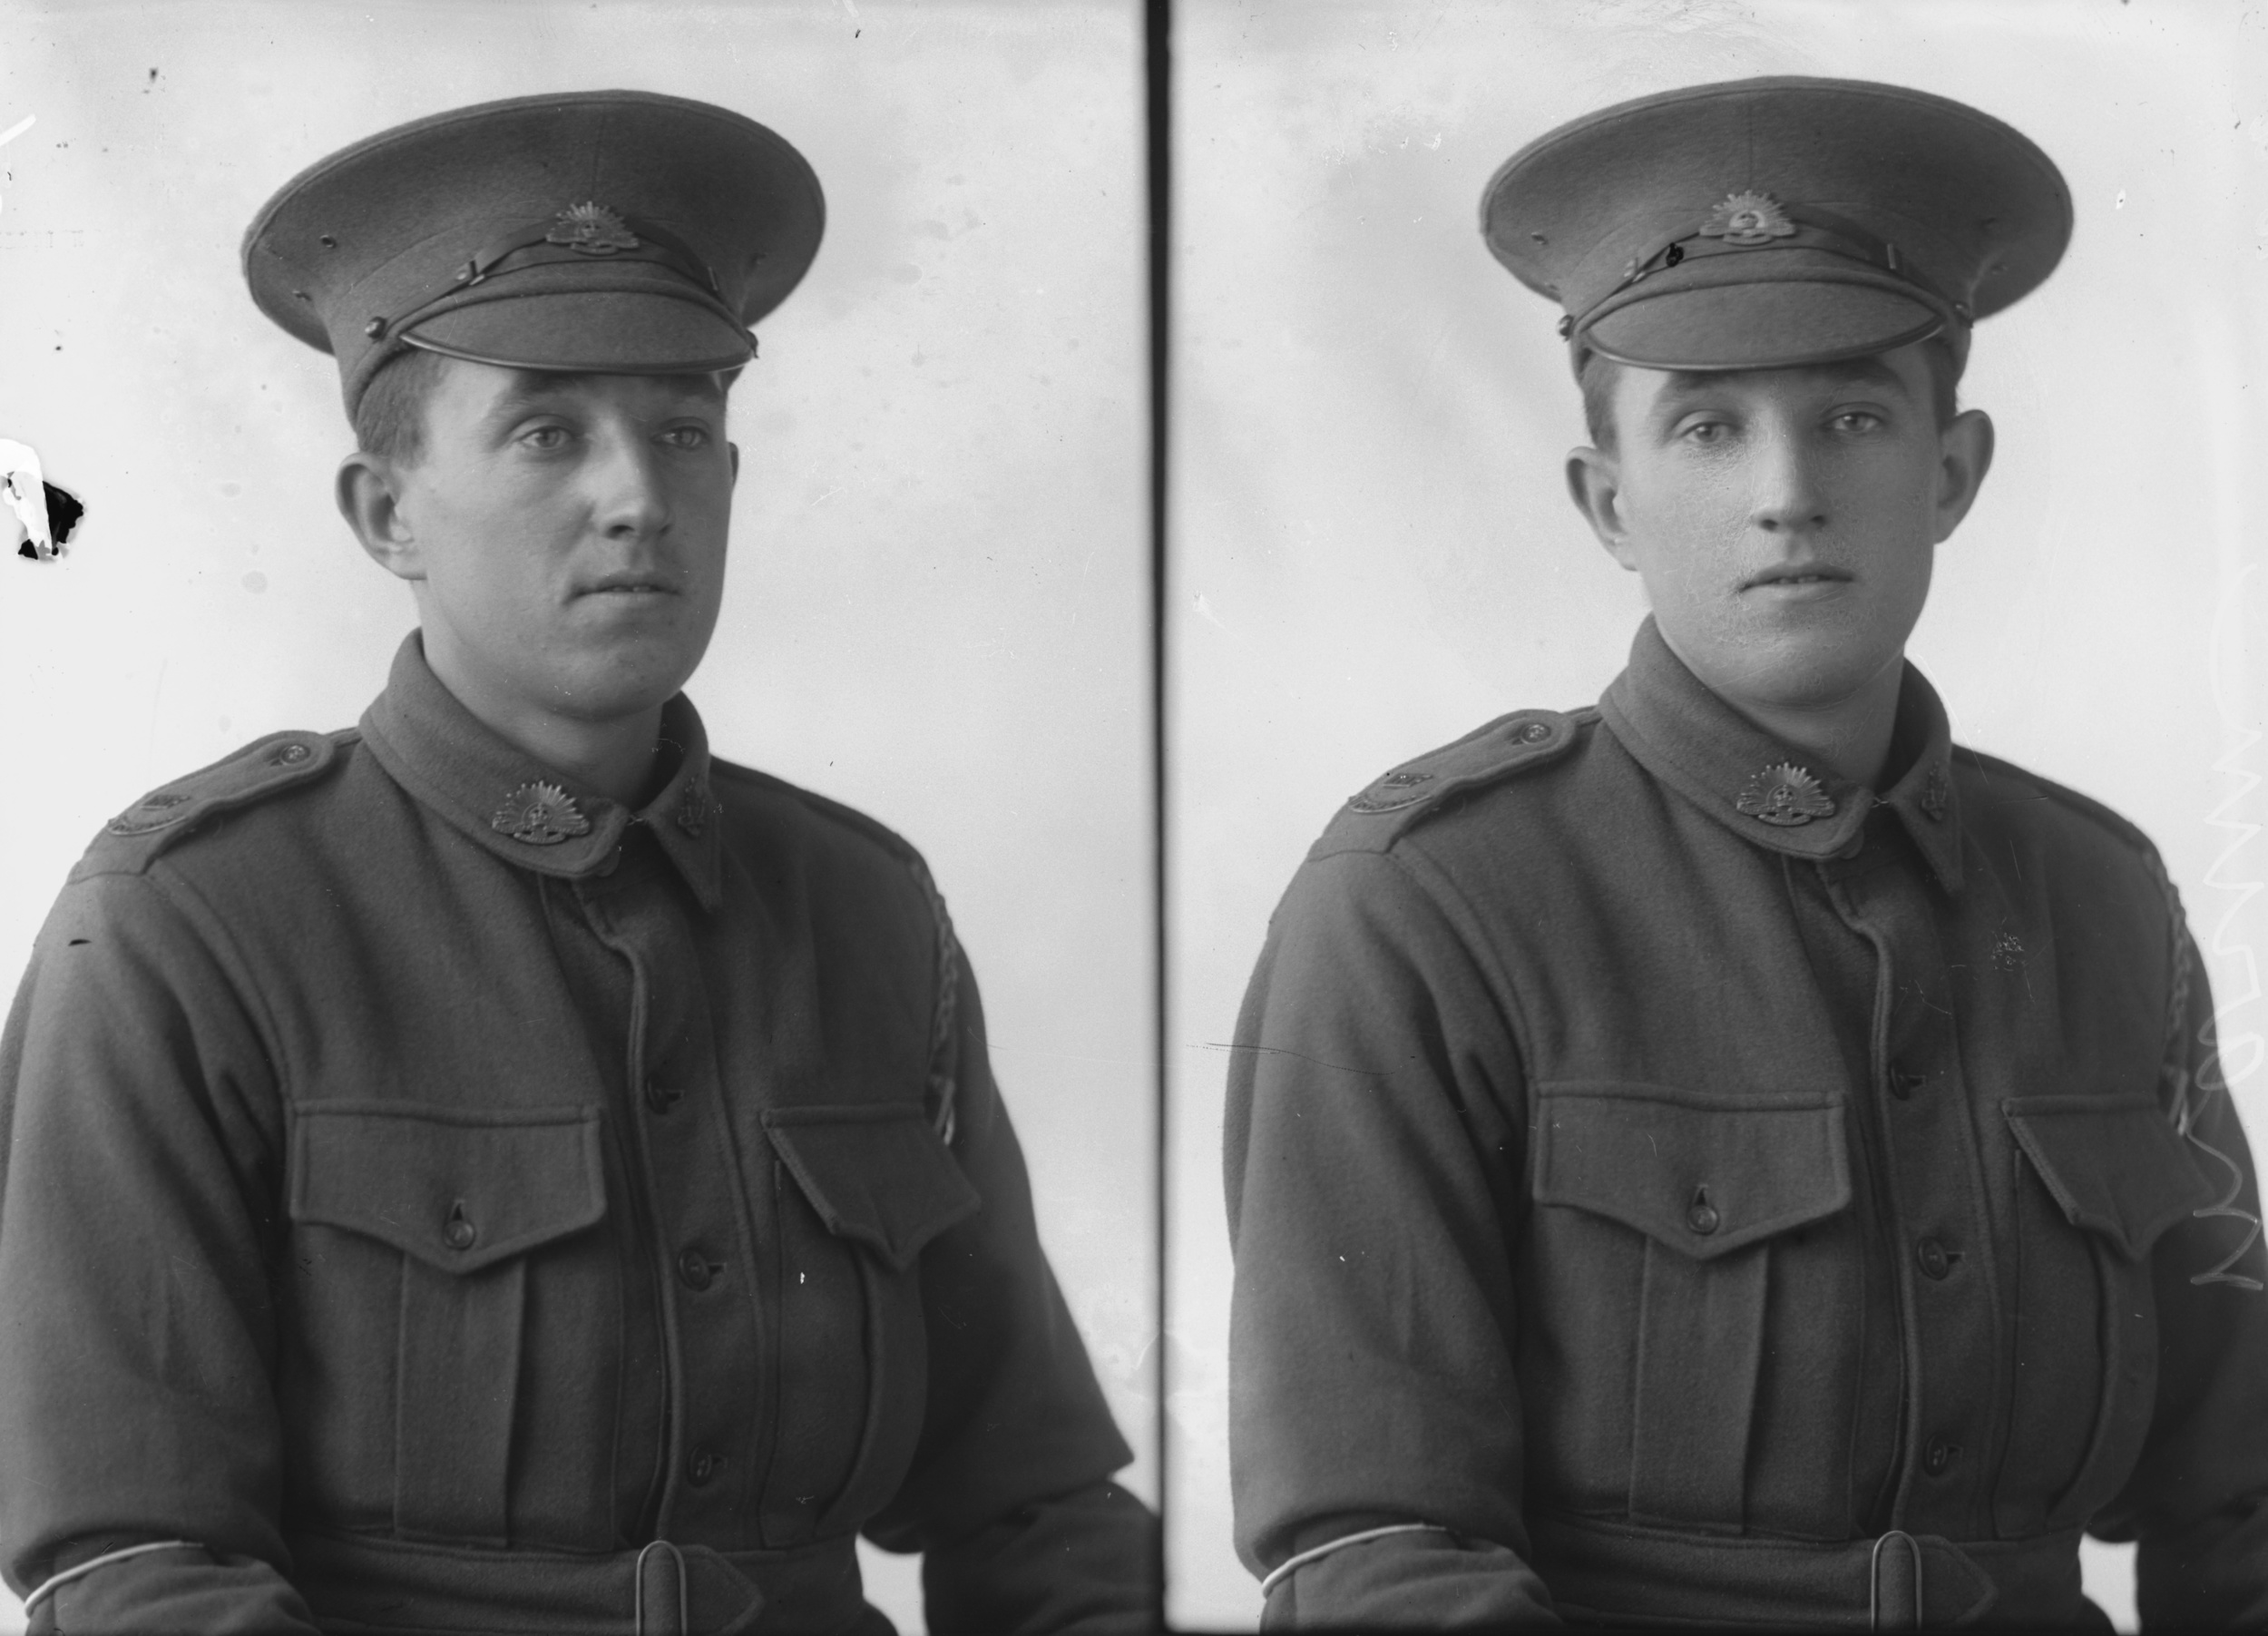 Photographed at the Dease Studio, 117 Barrack Street Perth WA Image courtesy of the State Library of Western Australia: 108141PD